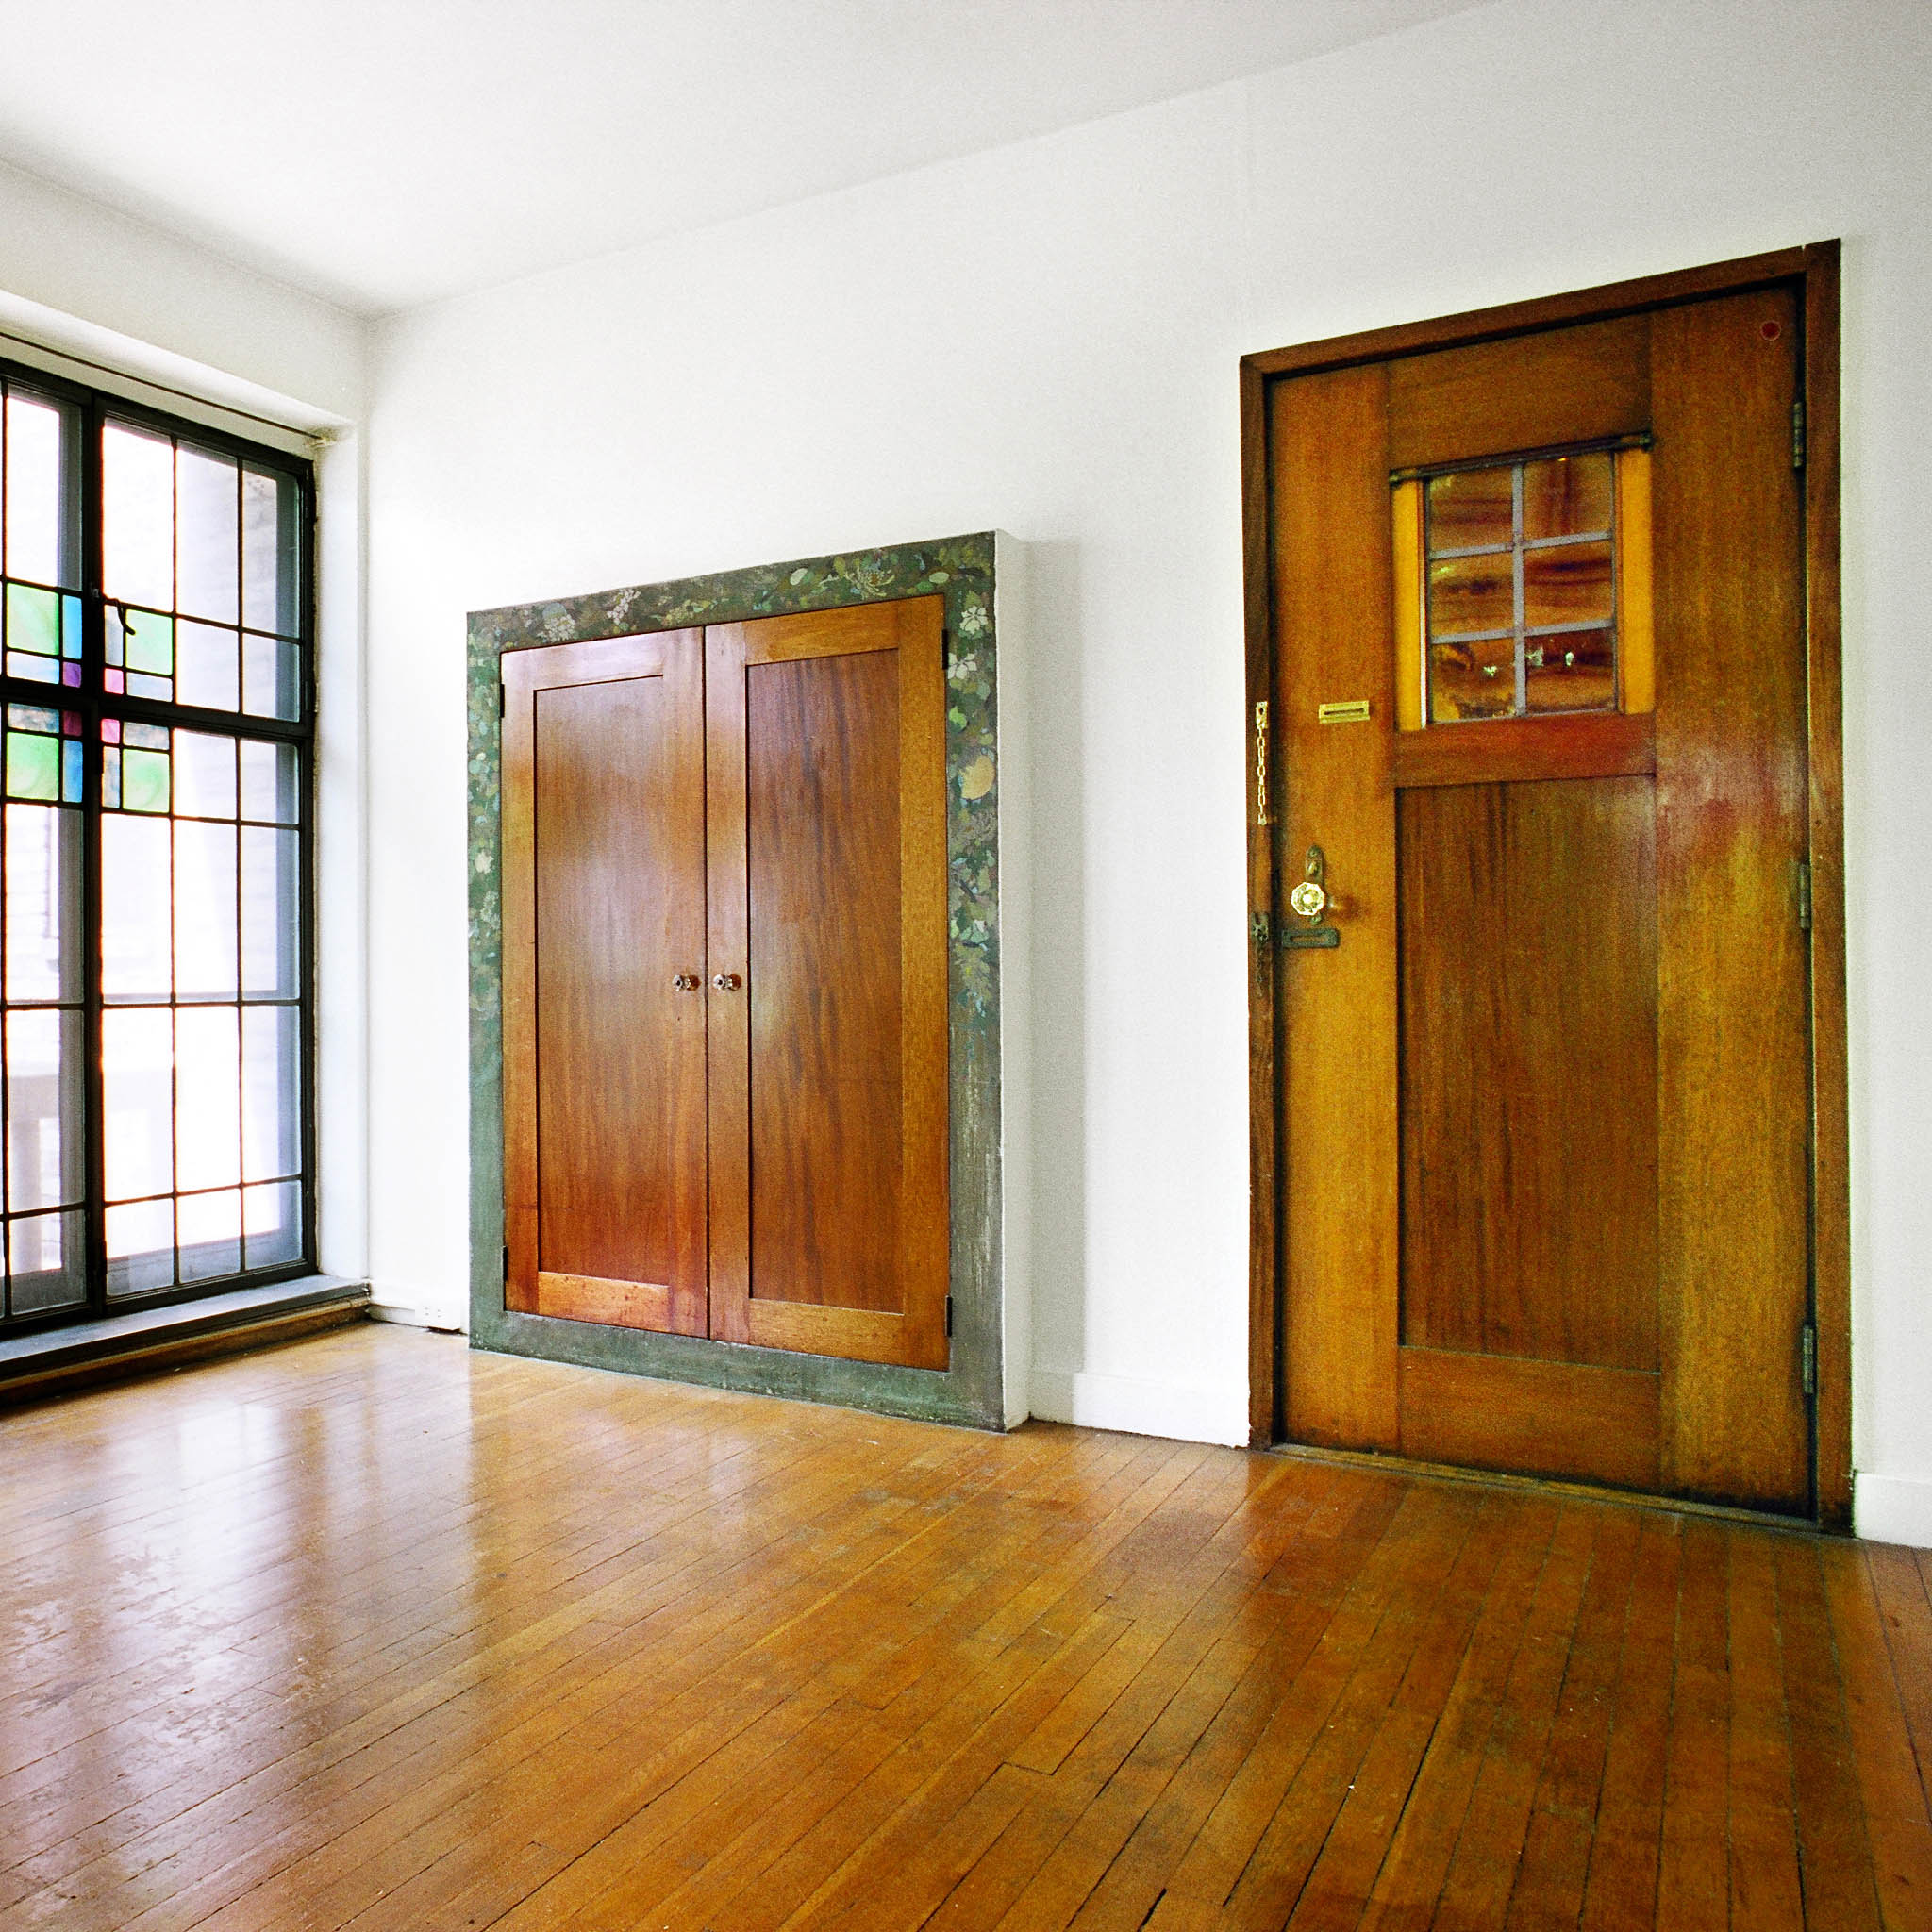 interior of 340 S. Highland Ave, Apt. 3A 5